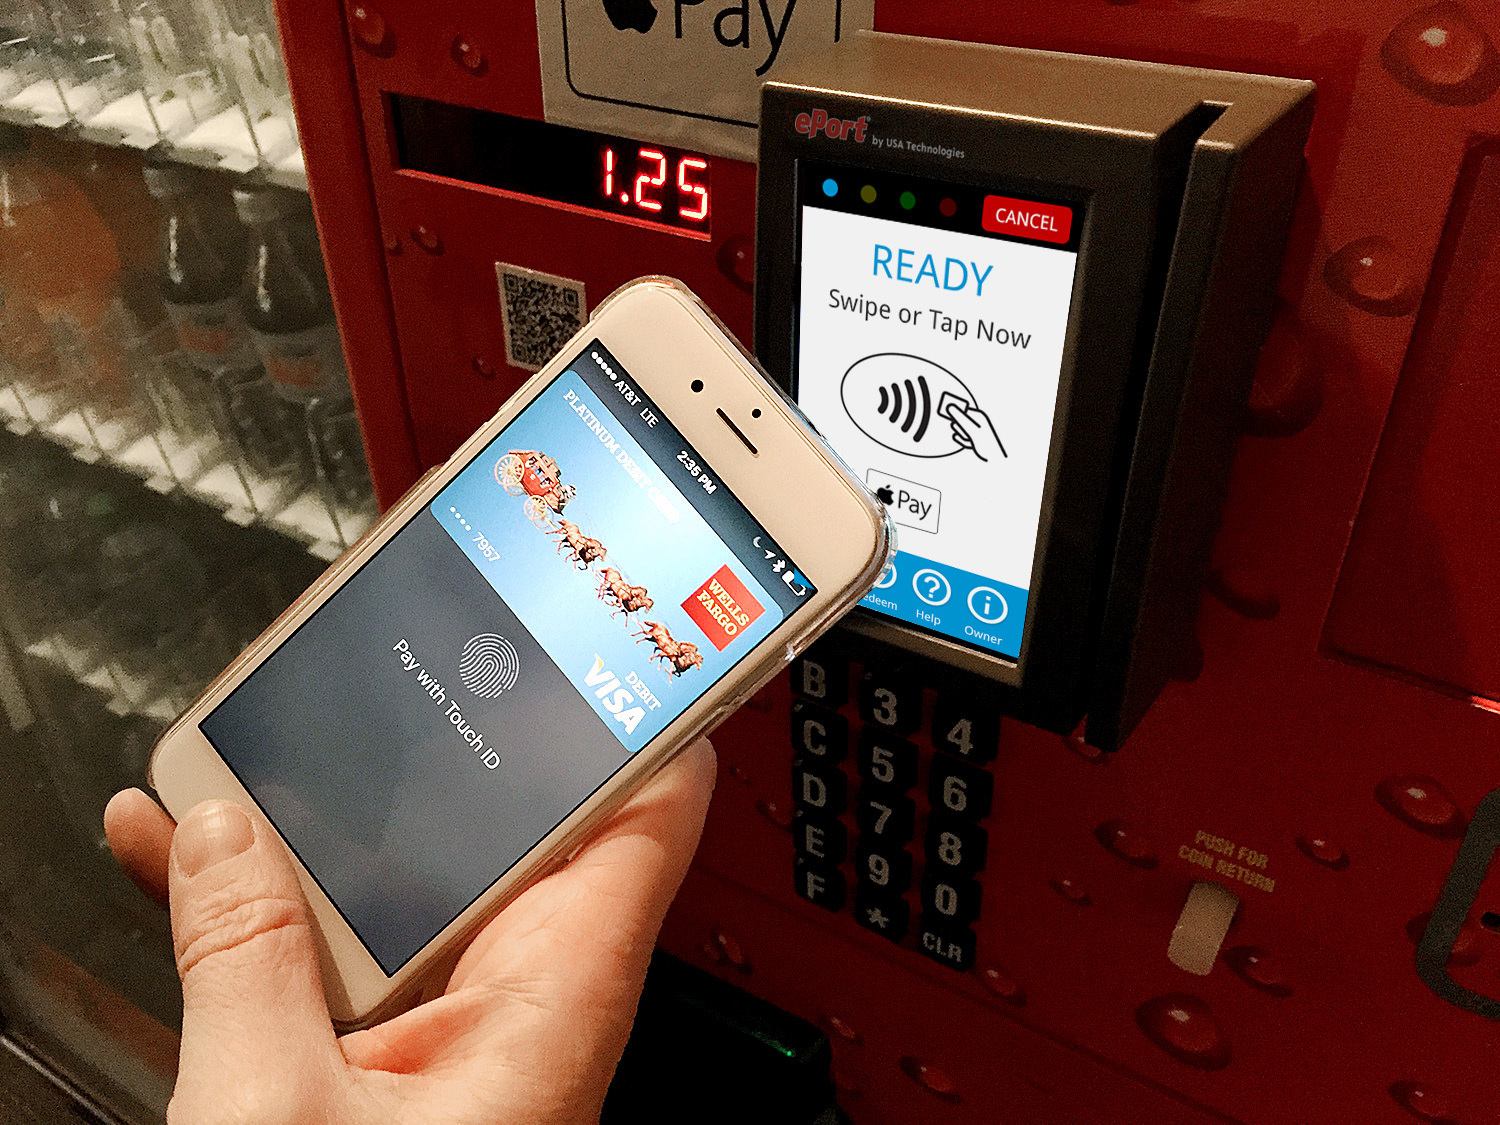 Displays and call-to-action messages can act as an electronic gateway for consumers to learn about and use the mobile wallets already installed on their phones (Photo: Business Wire)